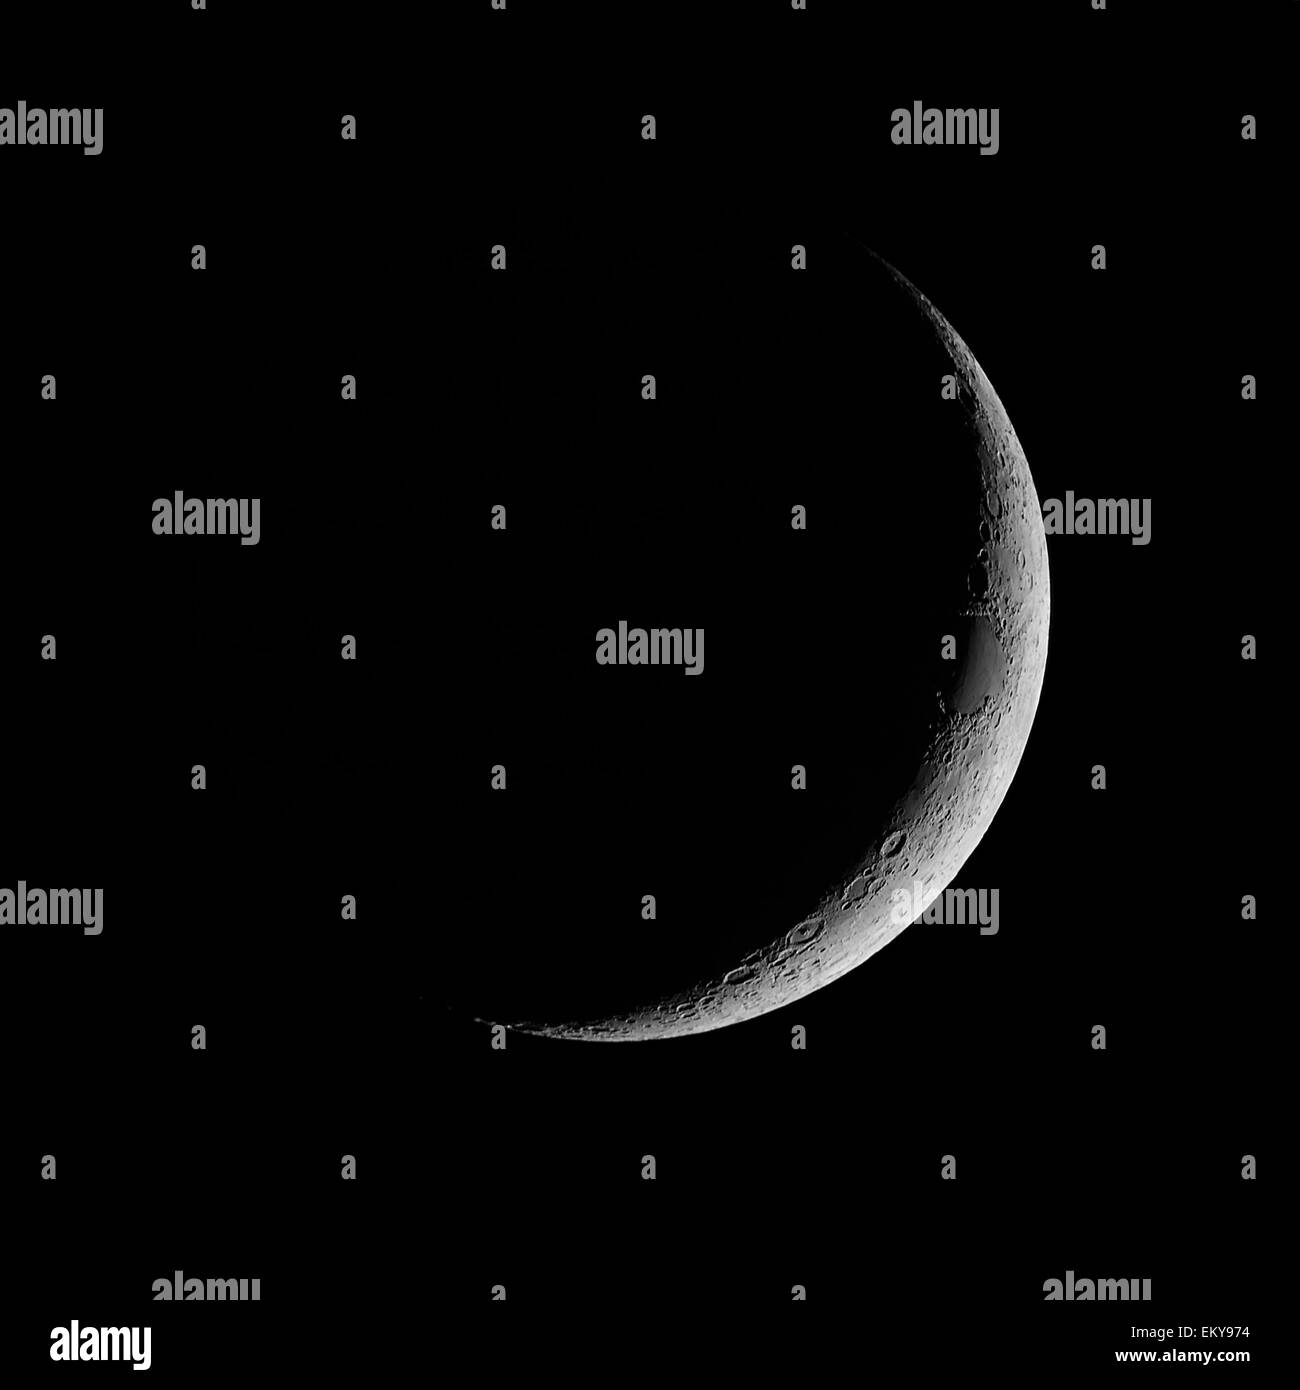 Waxing Crescent, crescent moon against black night sky - Stock Image